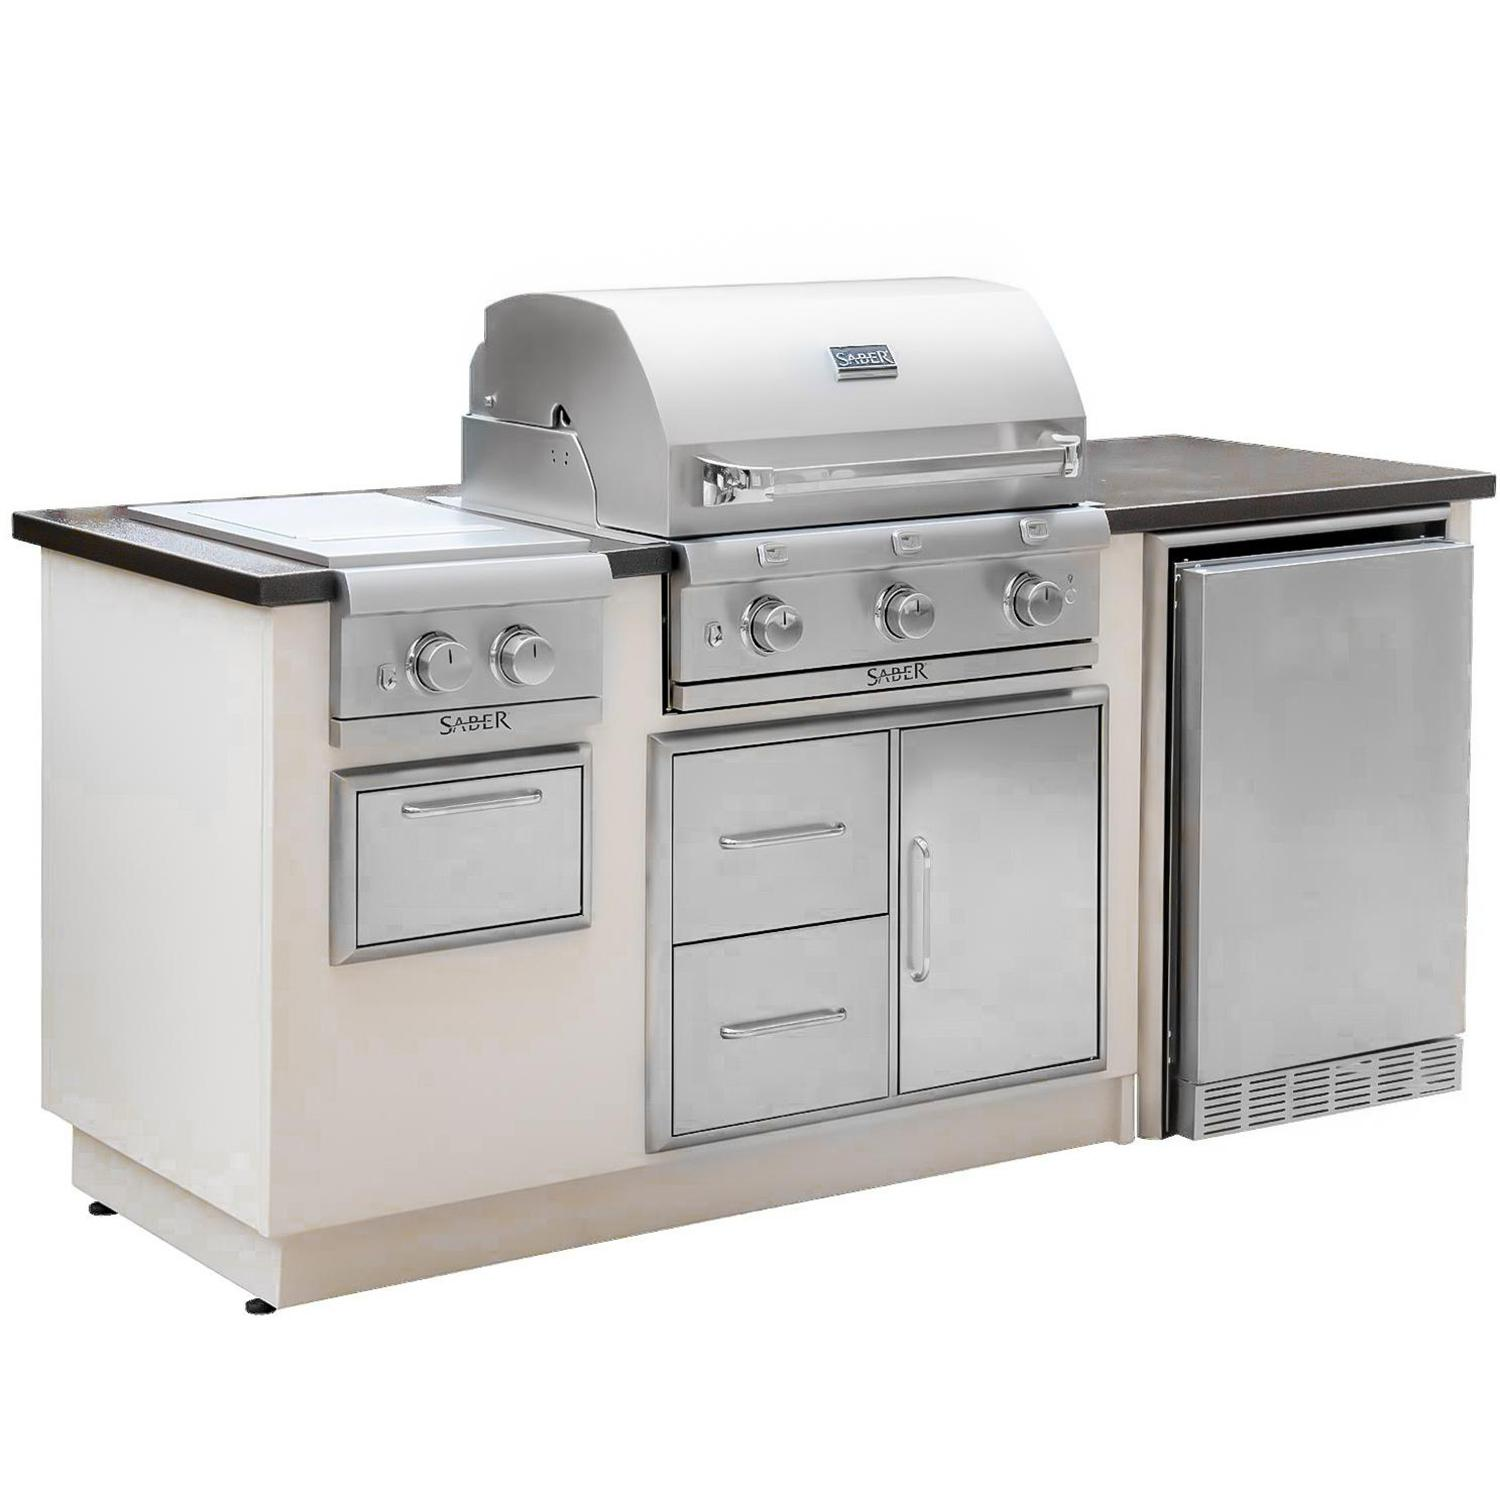 Saber Grills Saber R Series Ez Outdoor Kitchen With Propane Grill And Side Burner Ships Outdoor Kitchen Kits Outdoor Kitchen Outdoor Kitchen Island